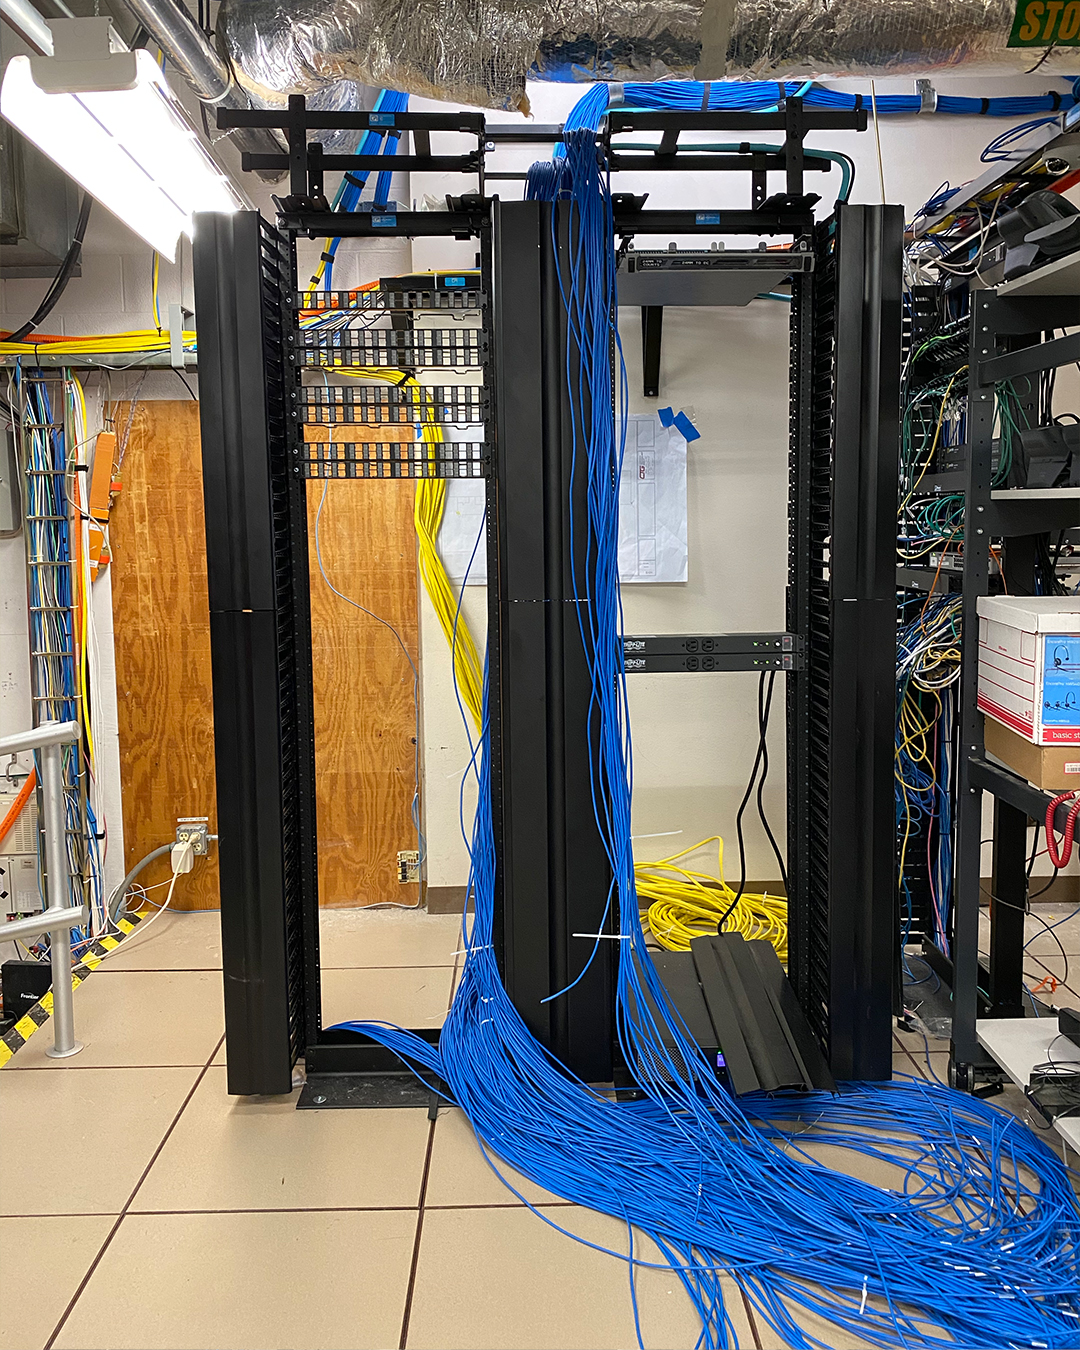 Long, blue cables coming out of the ceiling and draping onto the ground